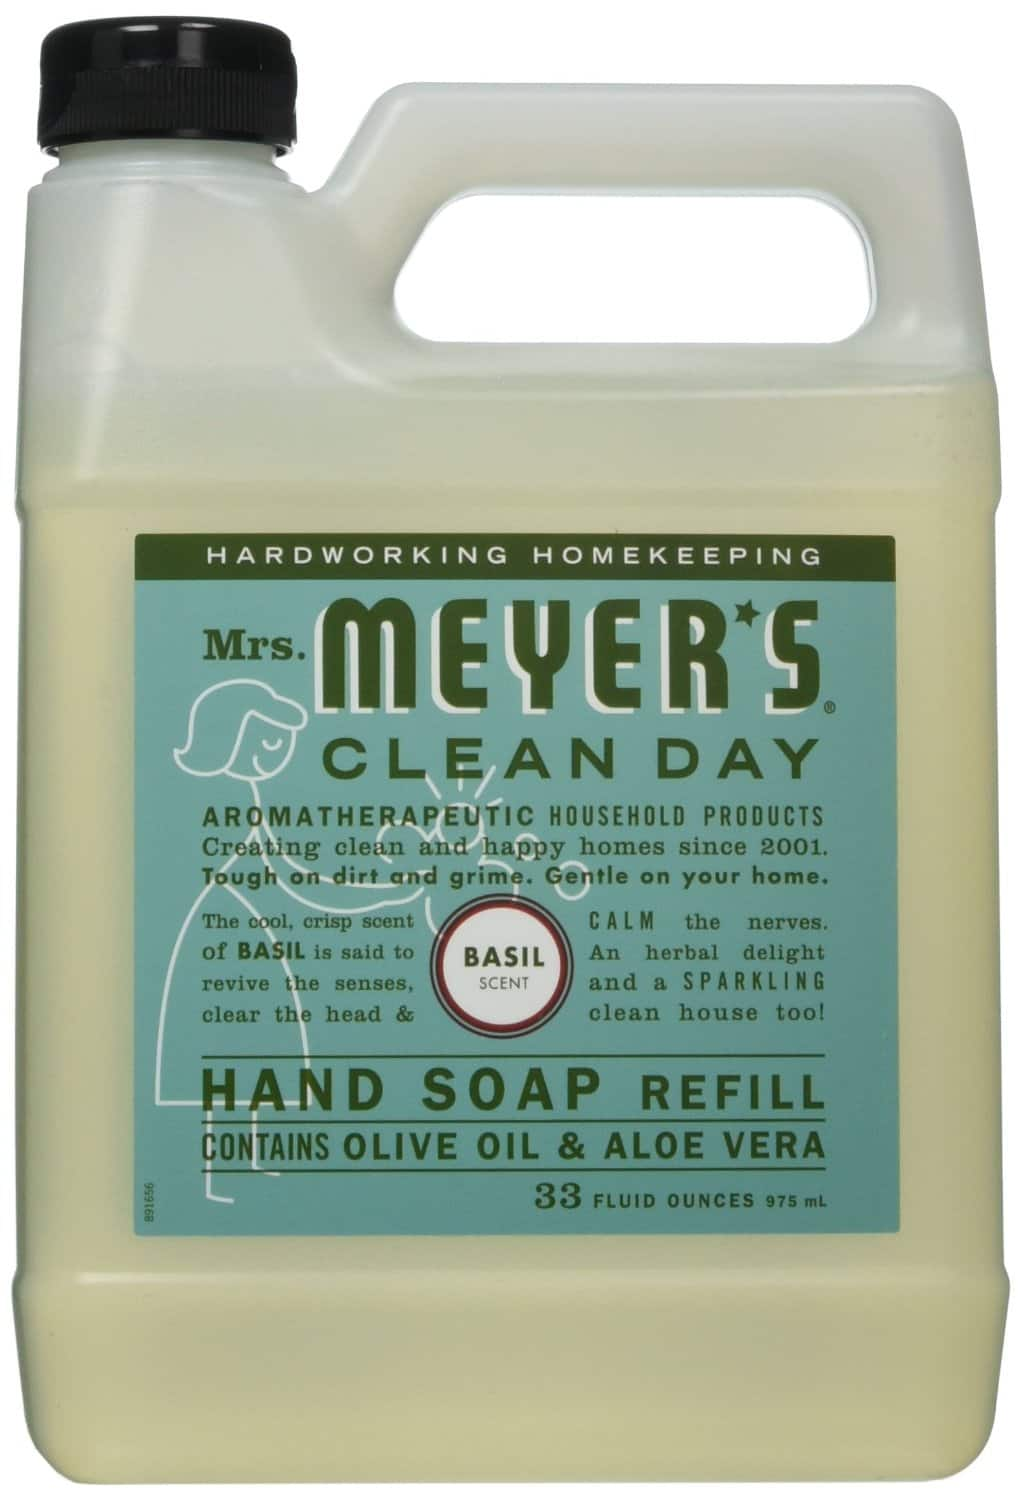 33oz Mrs. Meyers Liquid Hand Soap Refill (Basil Scent) $4.20 + Free Shipping